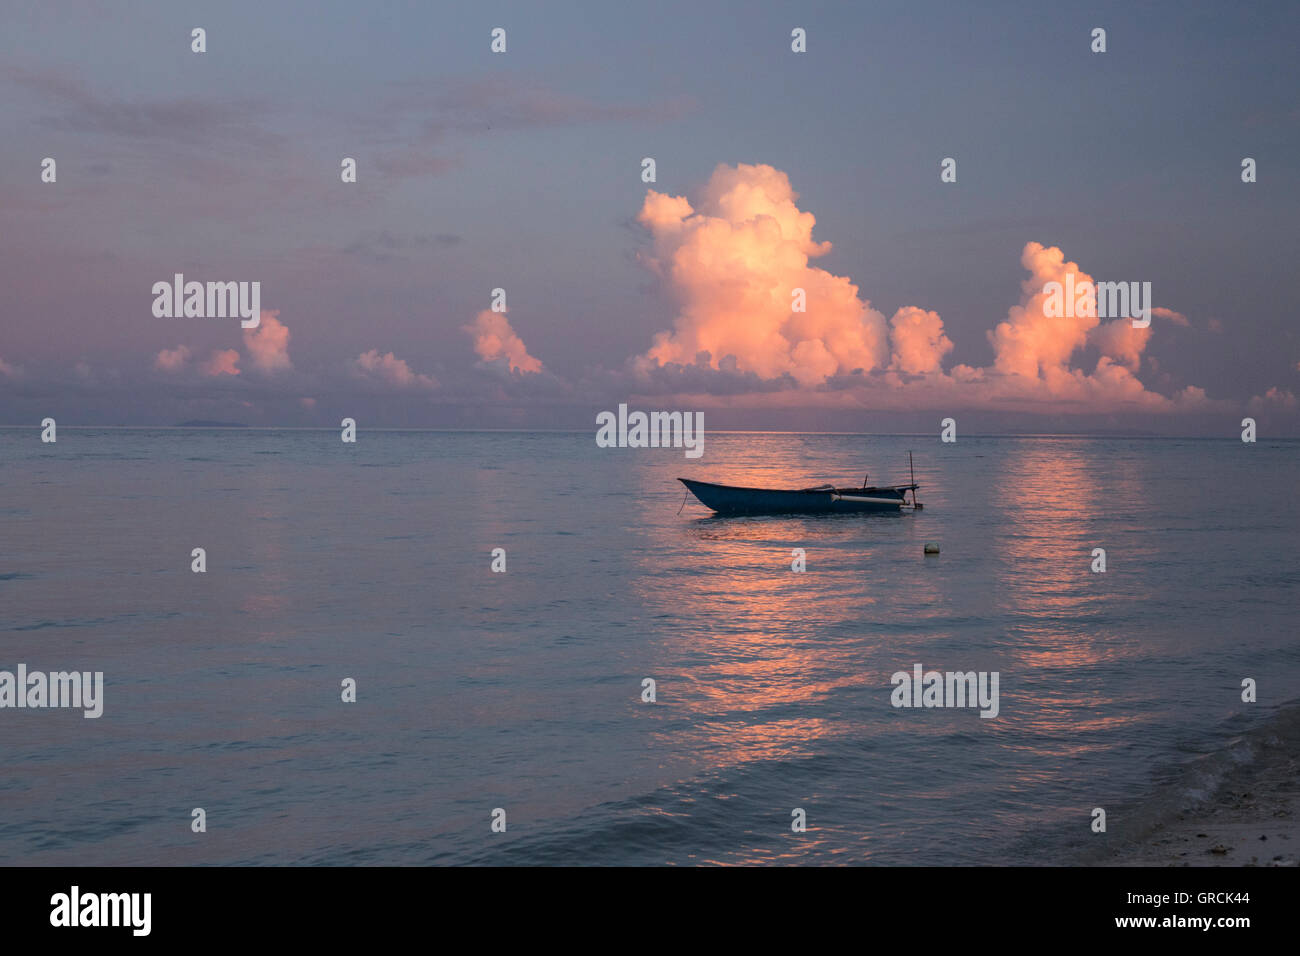 Indonesian Outrigger Canoe On The Sea In Gentle Evening Light, Rosy Cumulus Clouds In The Background - Stock Image